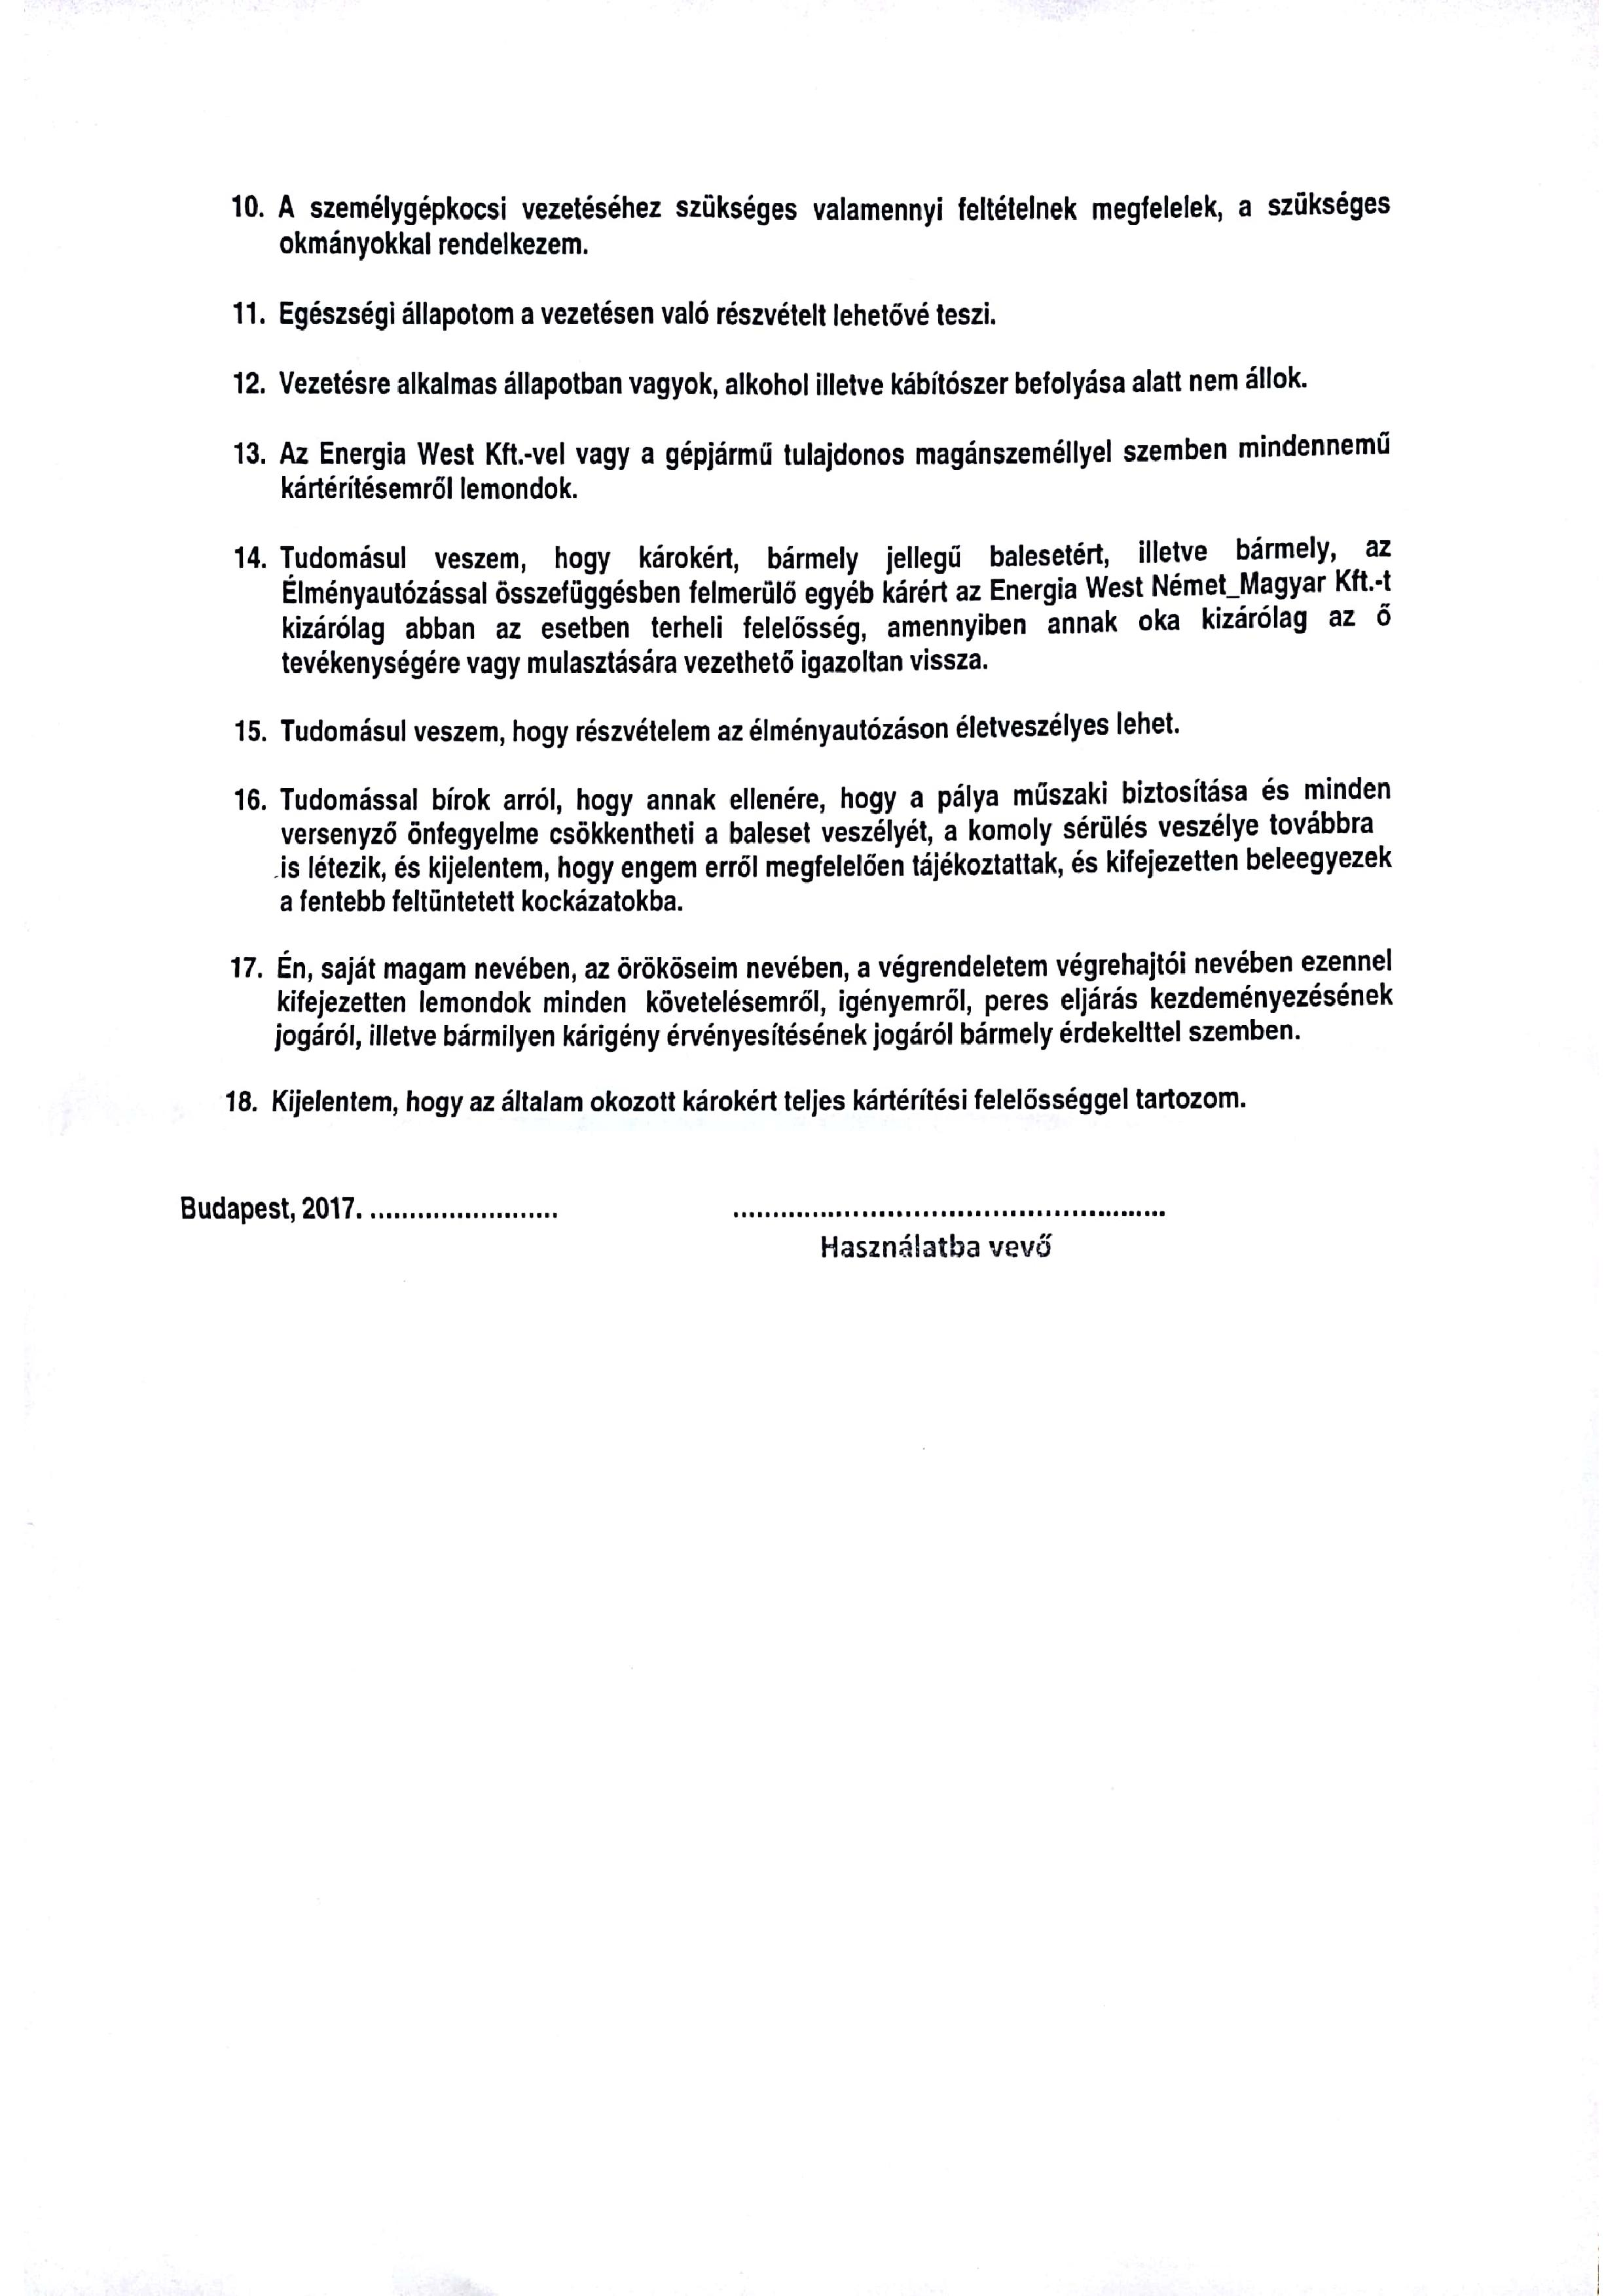 new_doc_2017-10-15-page-002.jpg